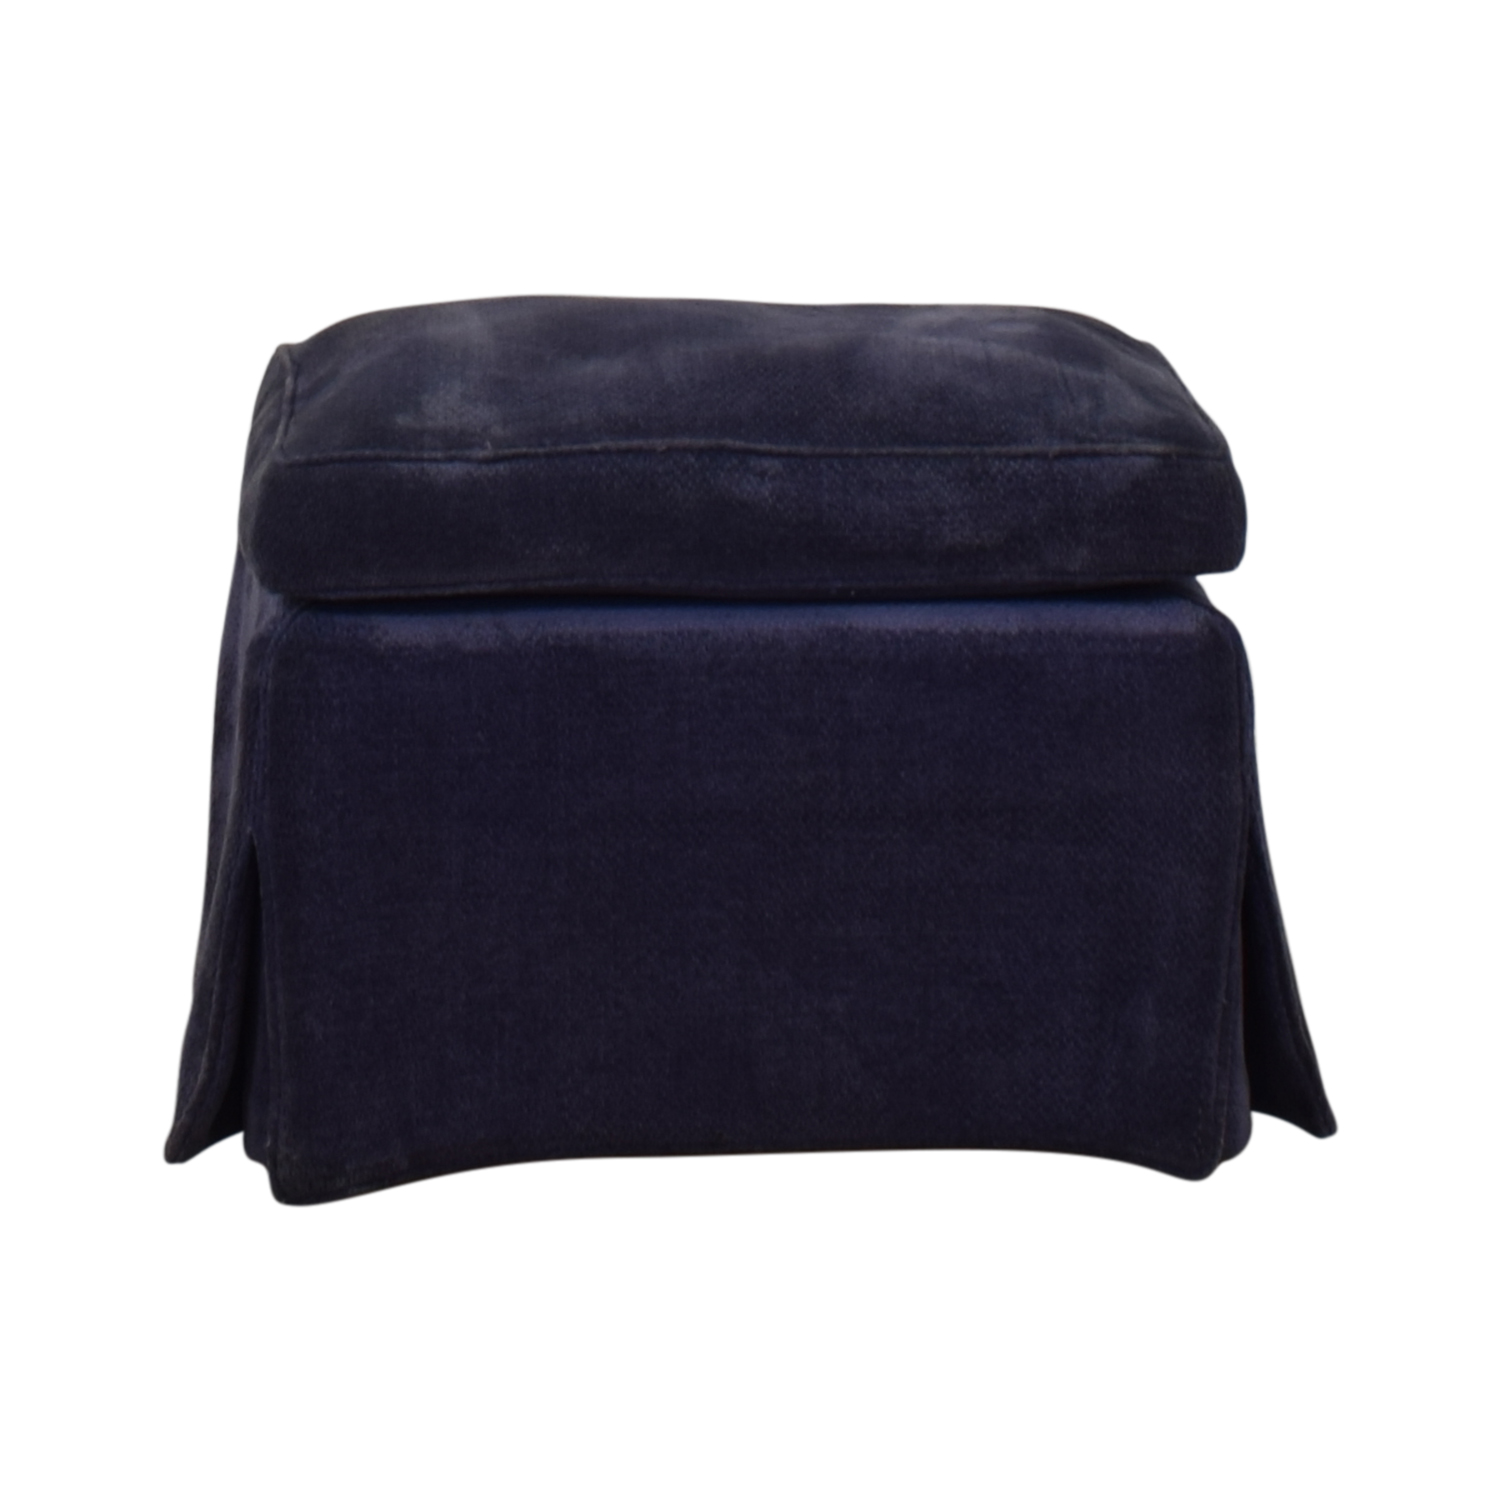 Rose Tarlow Rose Tarlow Ottoman for sale